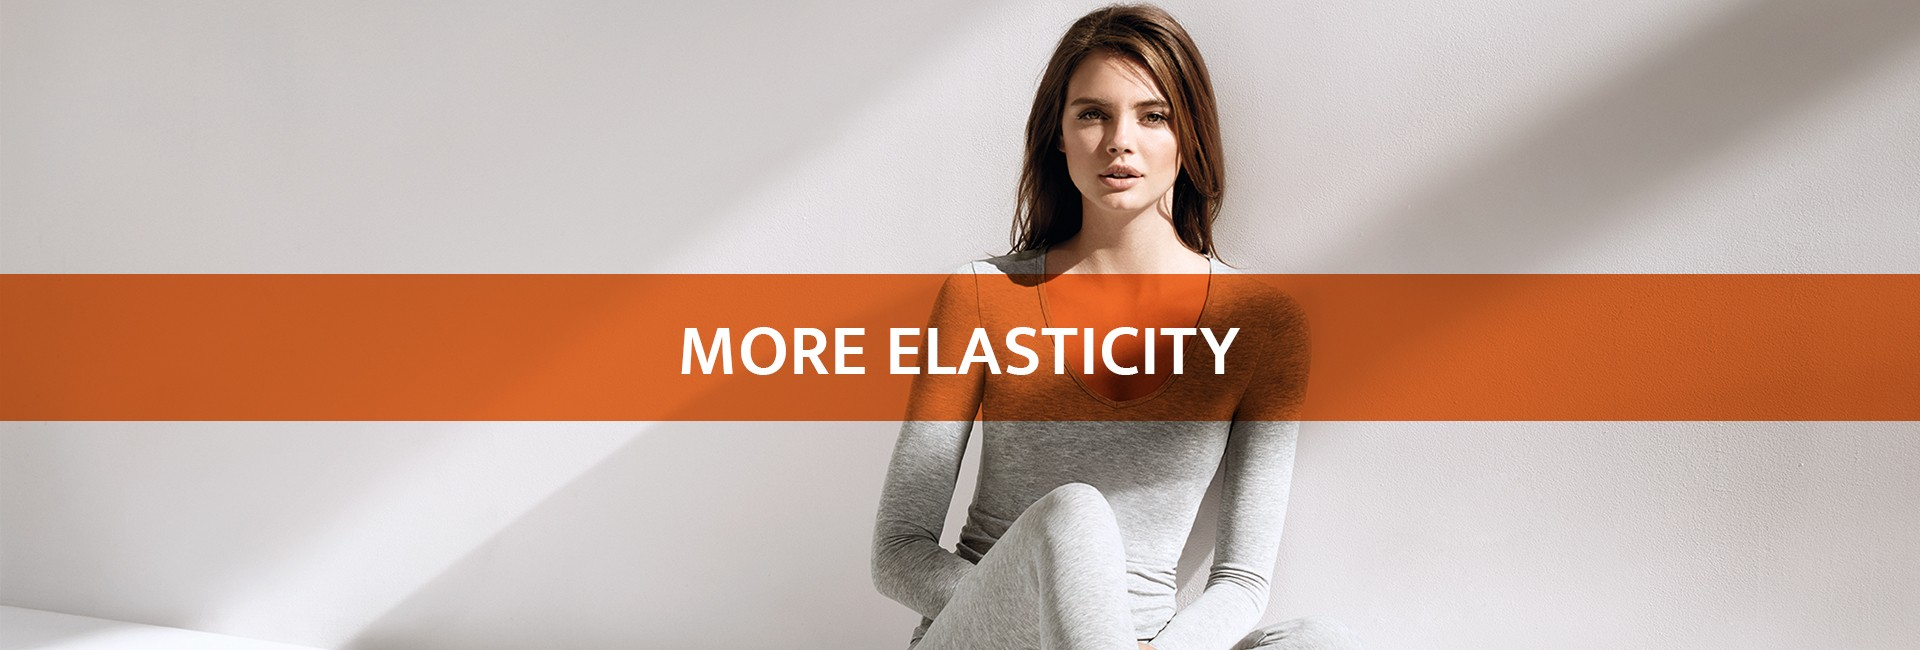 More elasticity | More adaptability | More mobility | More comfort | Thermal underwear_0